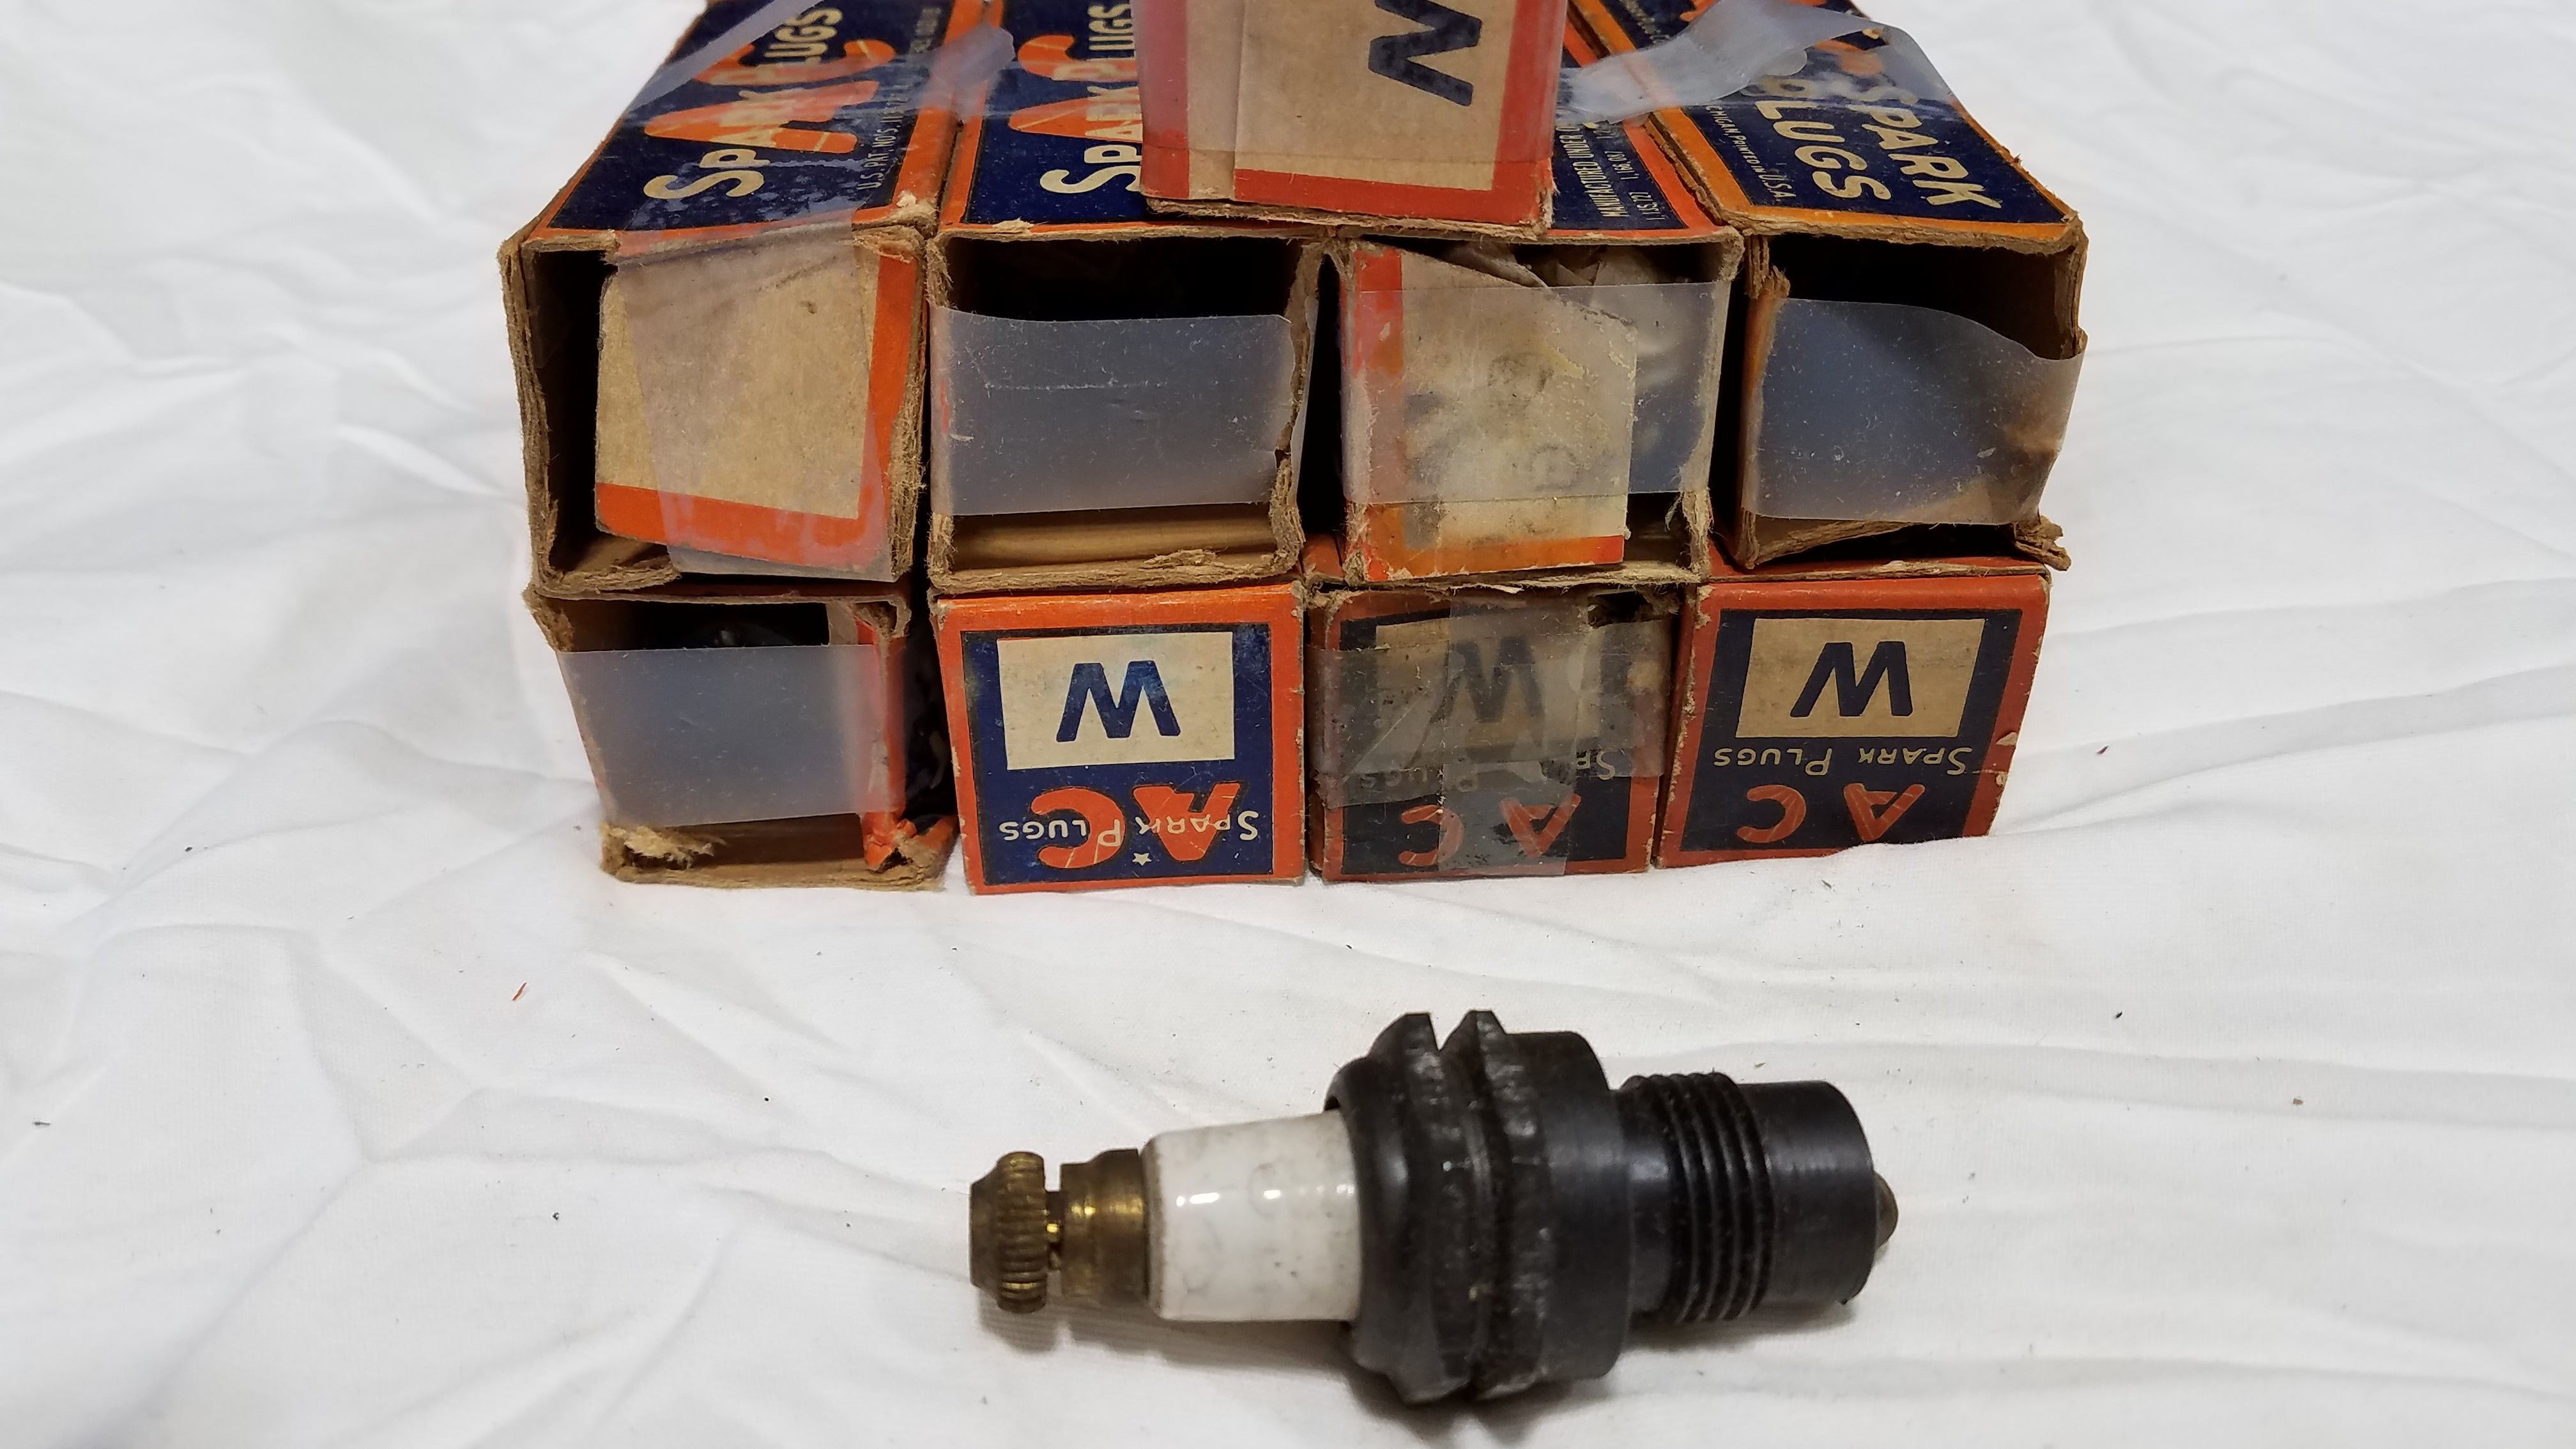 Rare Vintage 9 AC W Spark Plugs in Original Boxes